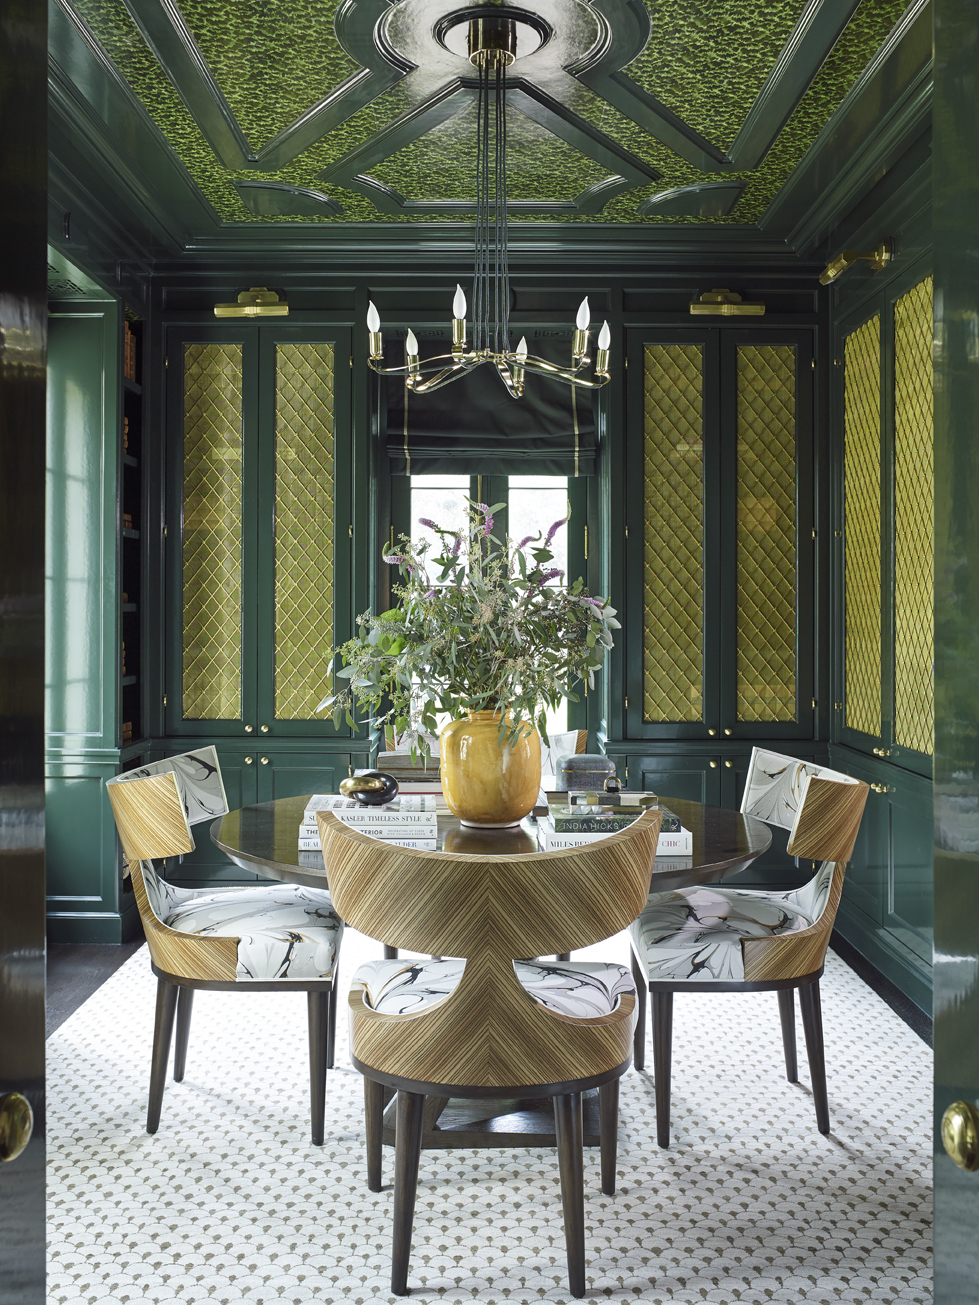 Deep emerald green with a touch of cyanbrings an indulgent, maximalist tone to the library. Lacquered walls and mouldings surround the room, punctuated by glass cabinet doors featuring unique metalwork.